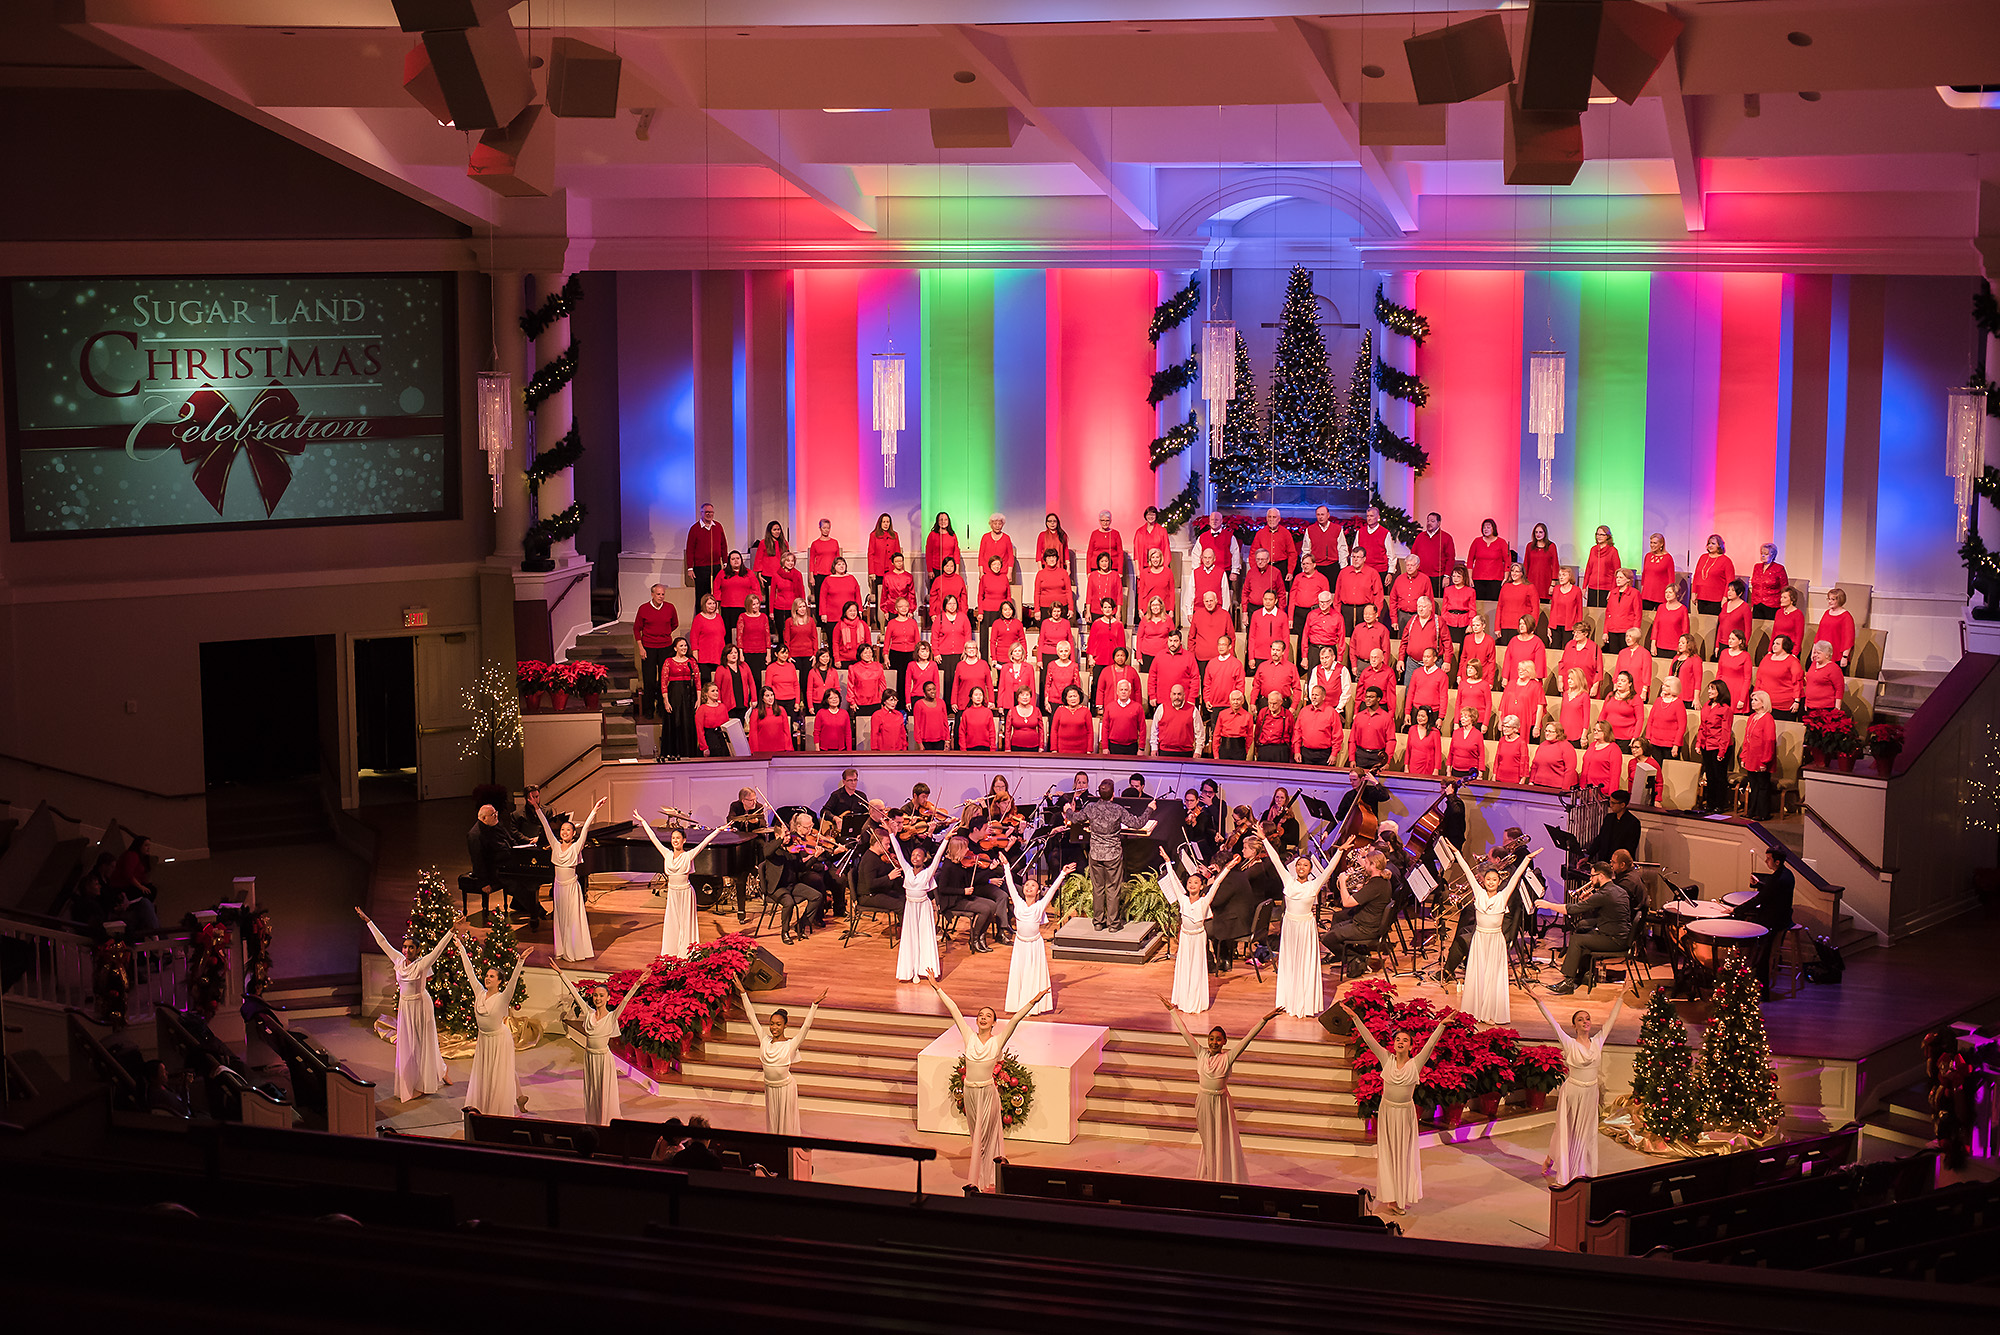 Sugar Land Christmas Celebration